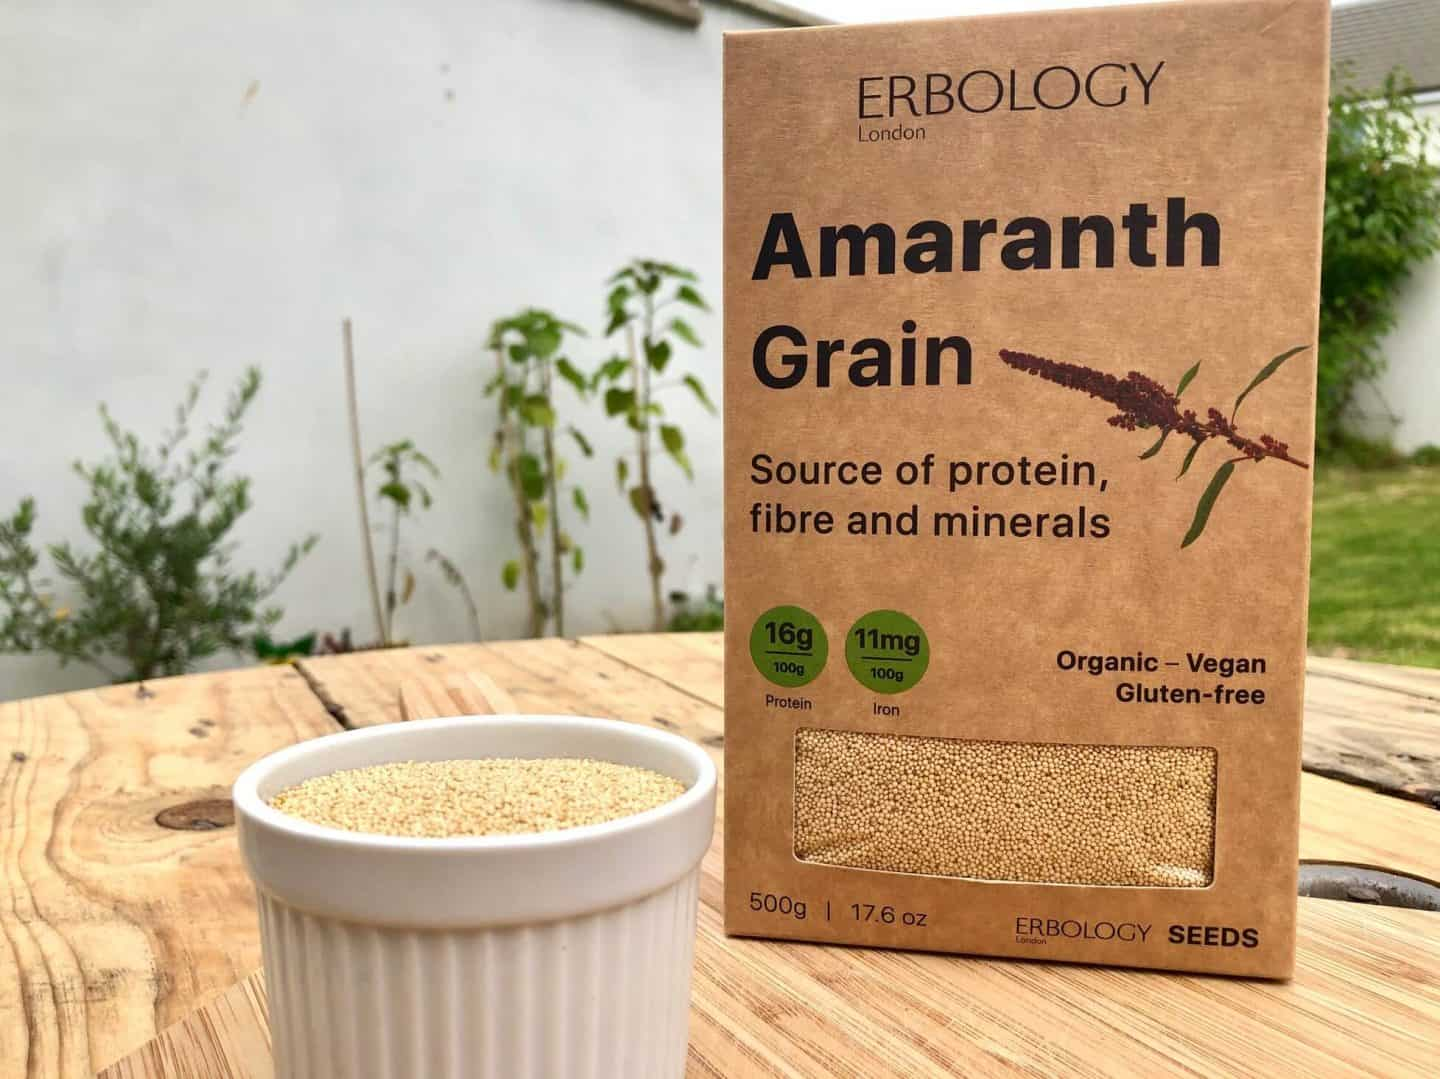 Amaranth Grain - source of protein, fibre and minerals. Vegan, organic and gluten-free